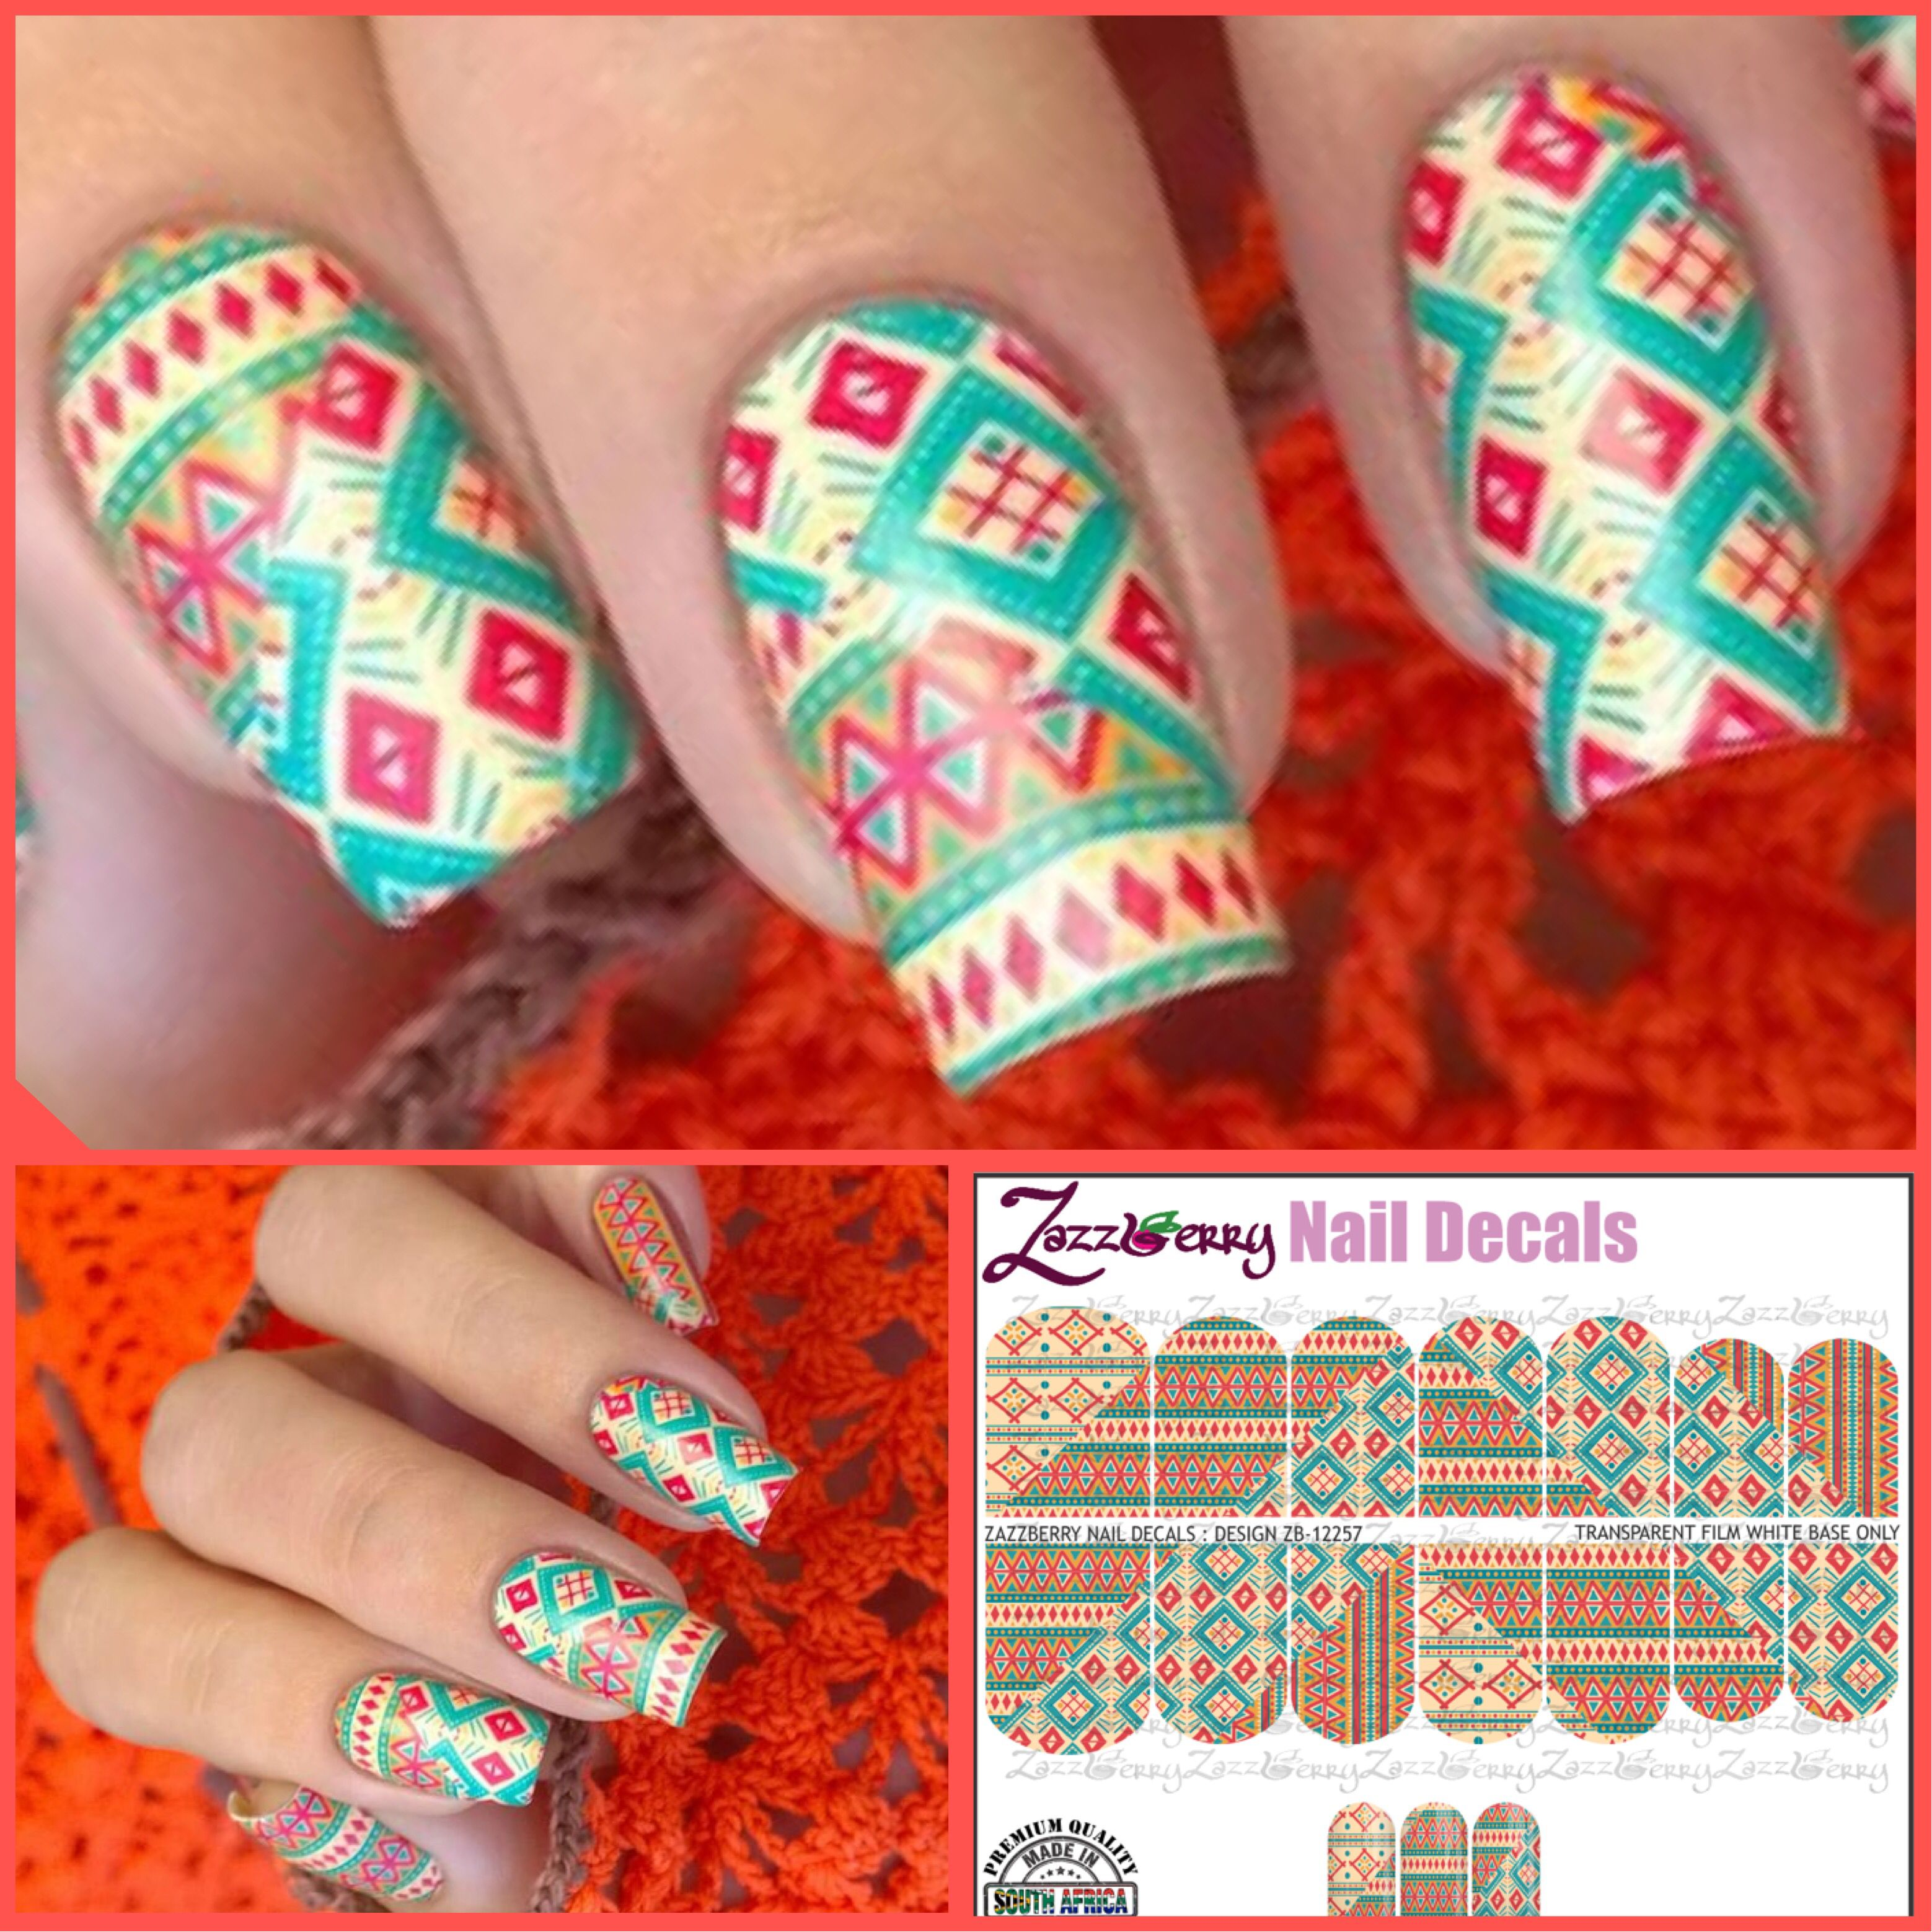 Zazzberry Nail Decals Online Store Nail Decals Nails Decals